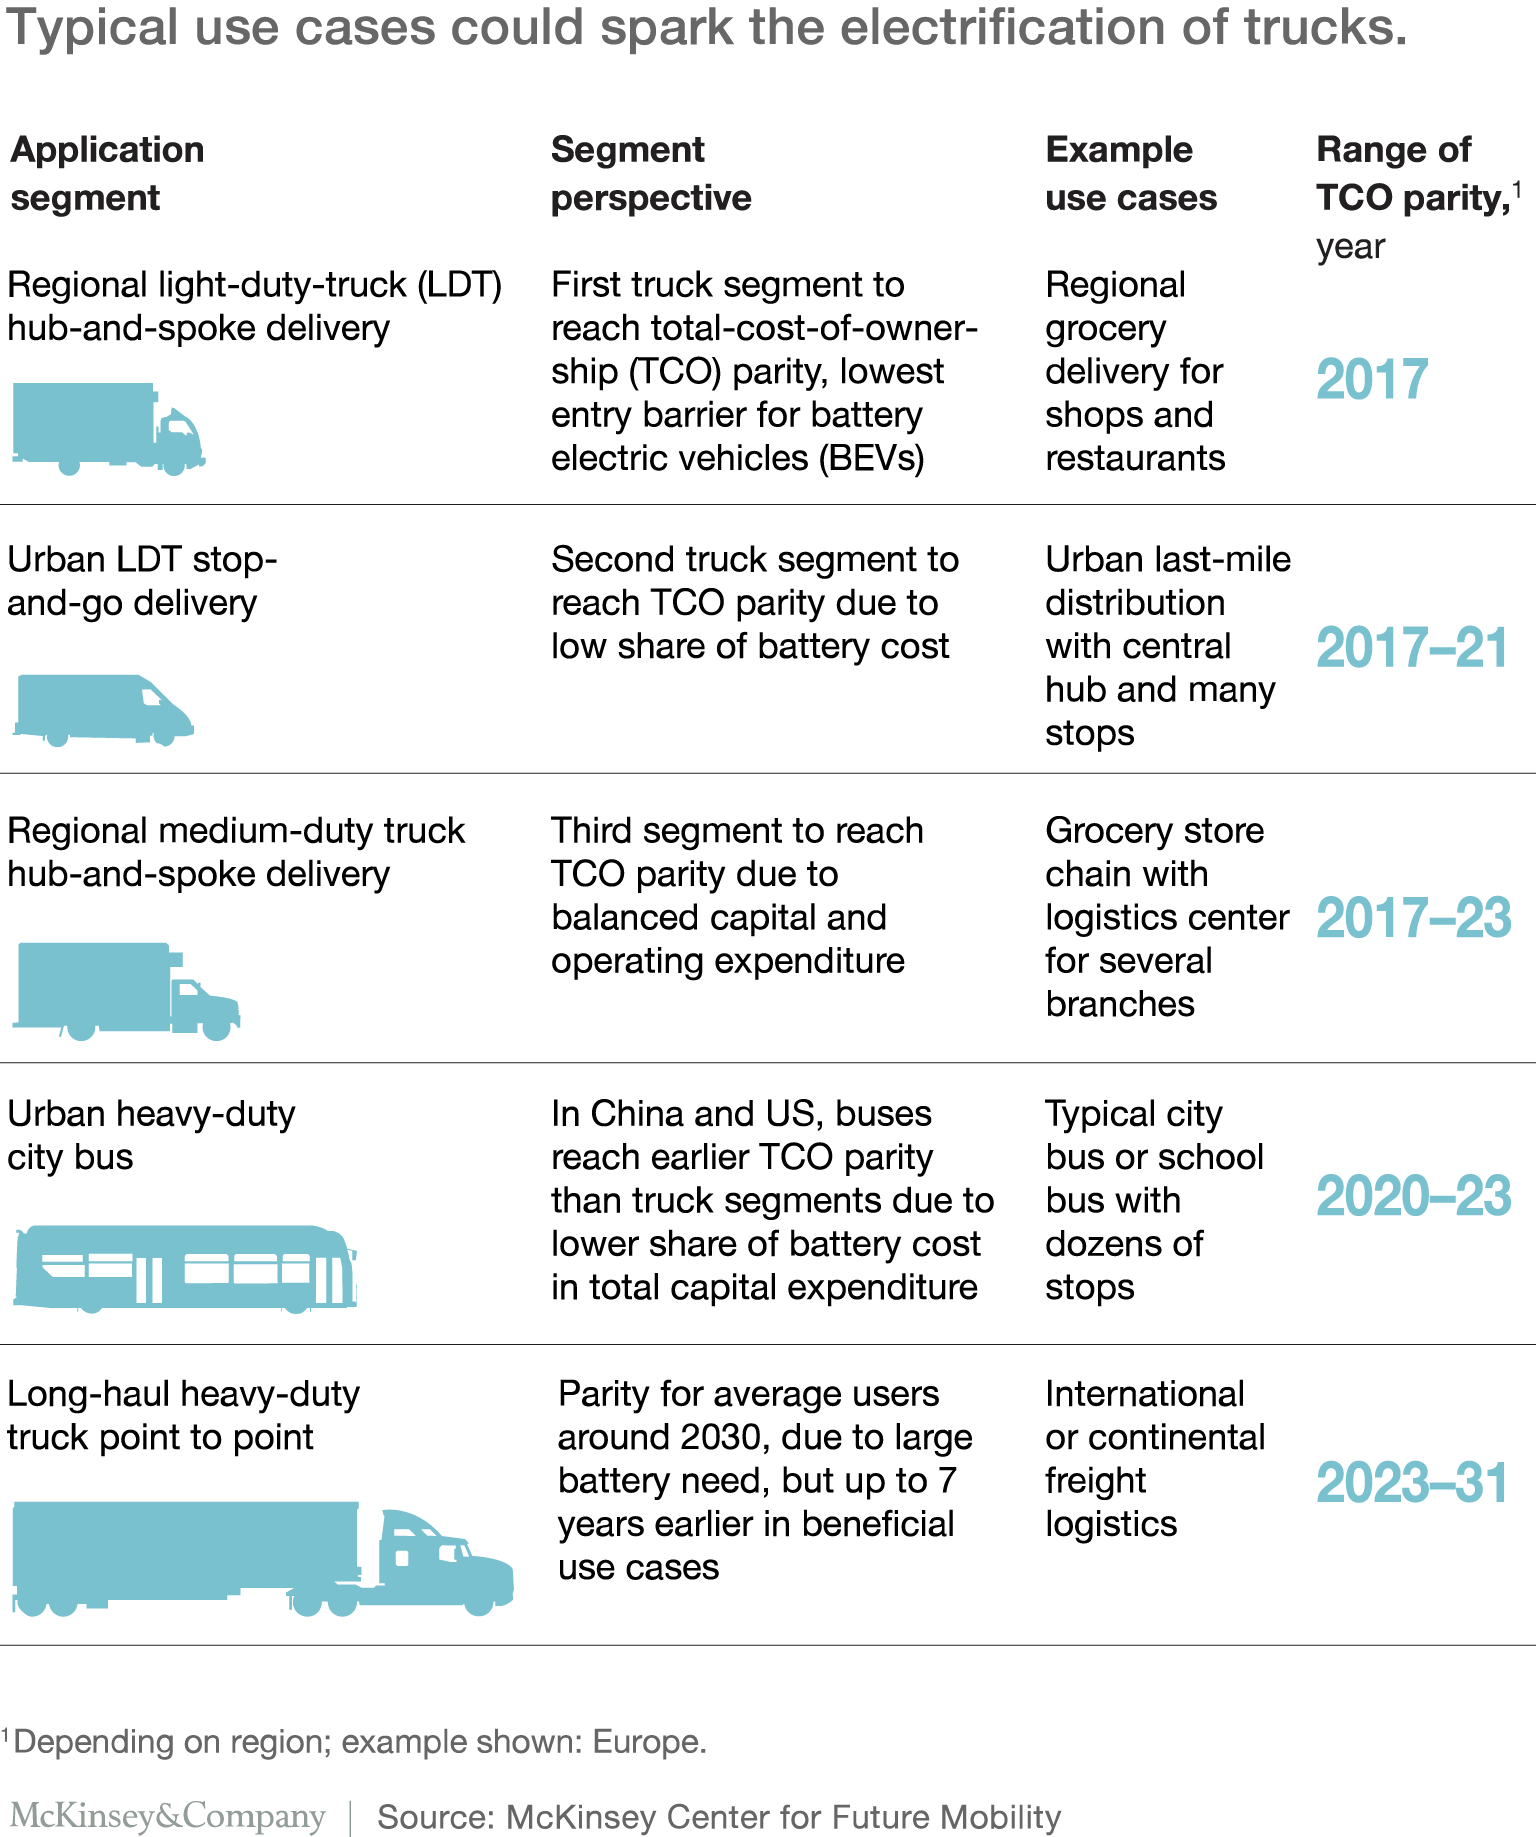 five use cases that will promote faster adoption of electric trucks: regional light-duty hub-and-spoke delivery, urban light-duty stop-and-go delivery, regional medium-duty hub-and-spoke delivery, heavy-duty city buses, and long-haul heavy-duty point-to-point routes